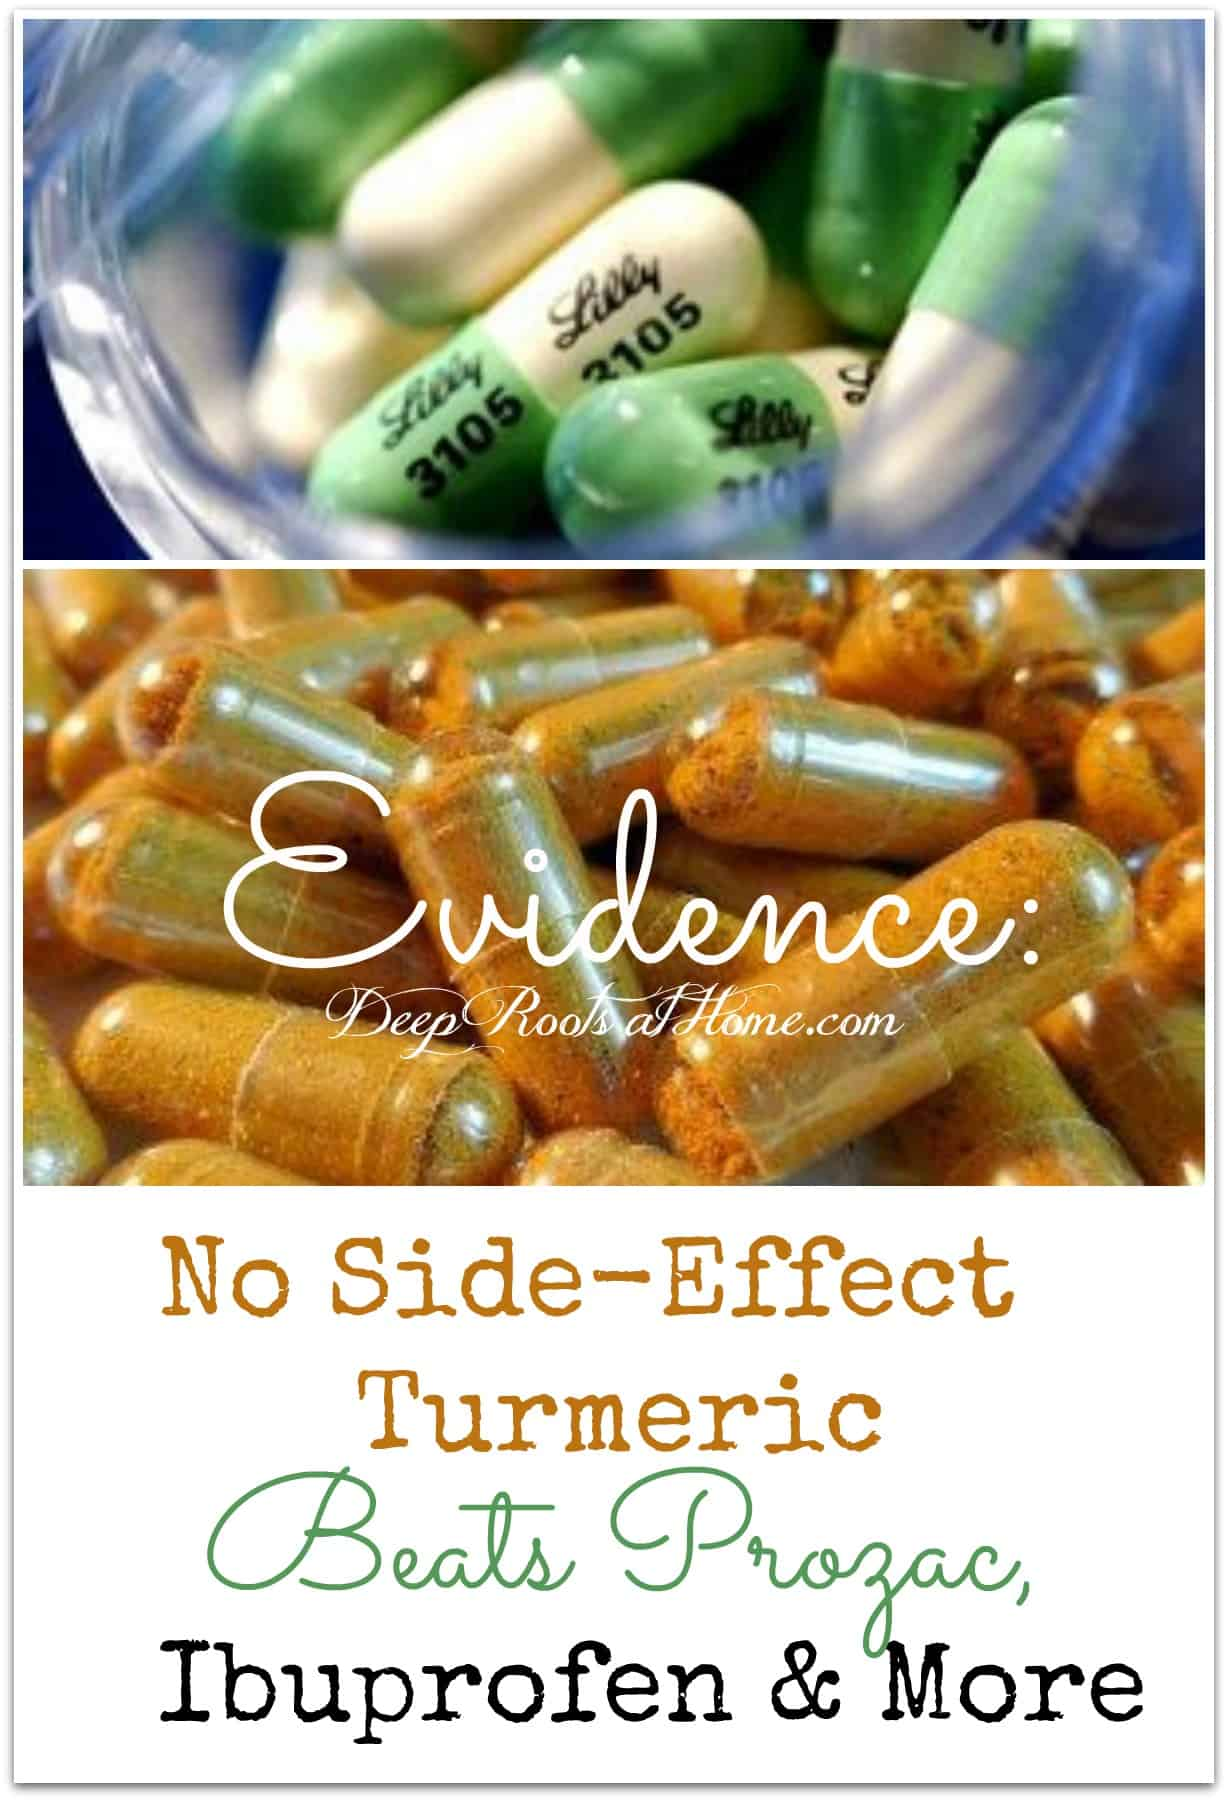 Evidence: No-Side-Effect Turmeric Beats Prozac, Ibuprofen & More. Image showing Prozac capsules by Lilly and a pile of hundreds of turmeric capsules. Pin image.